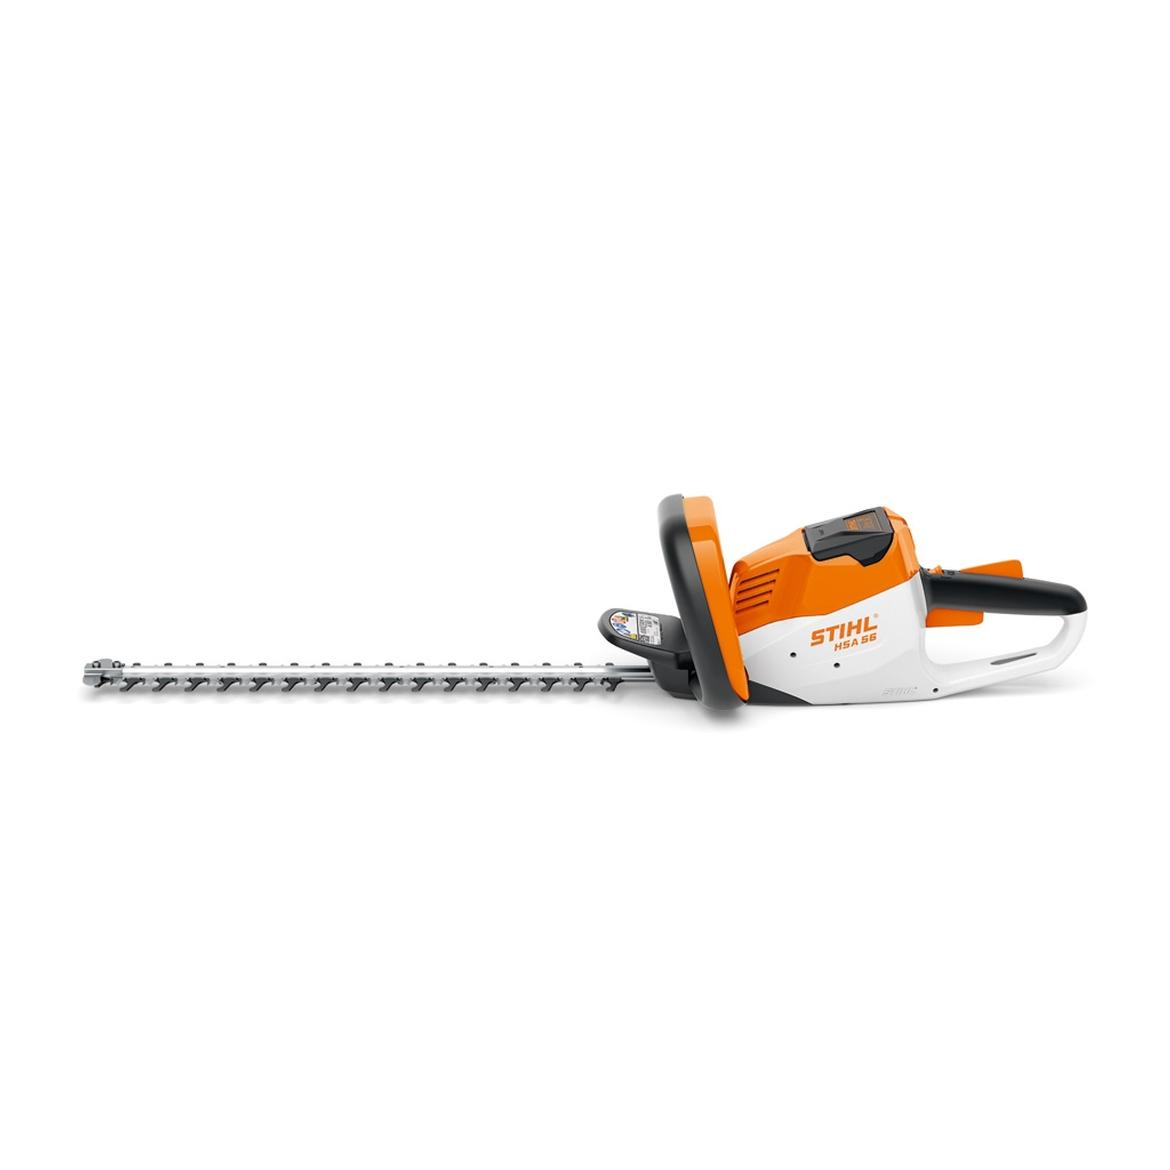 Stihl hsa56 cordless hedgetrimmer 18 radmore tucker for Gardening tools and accessories